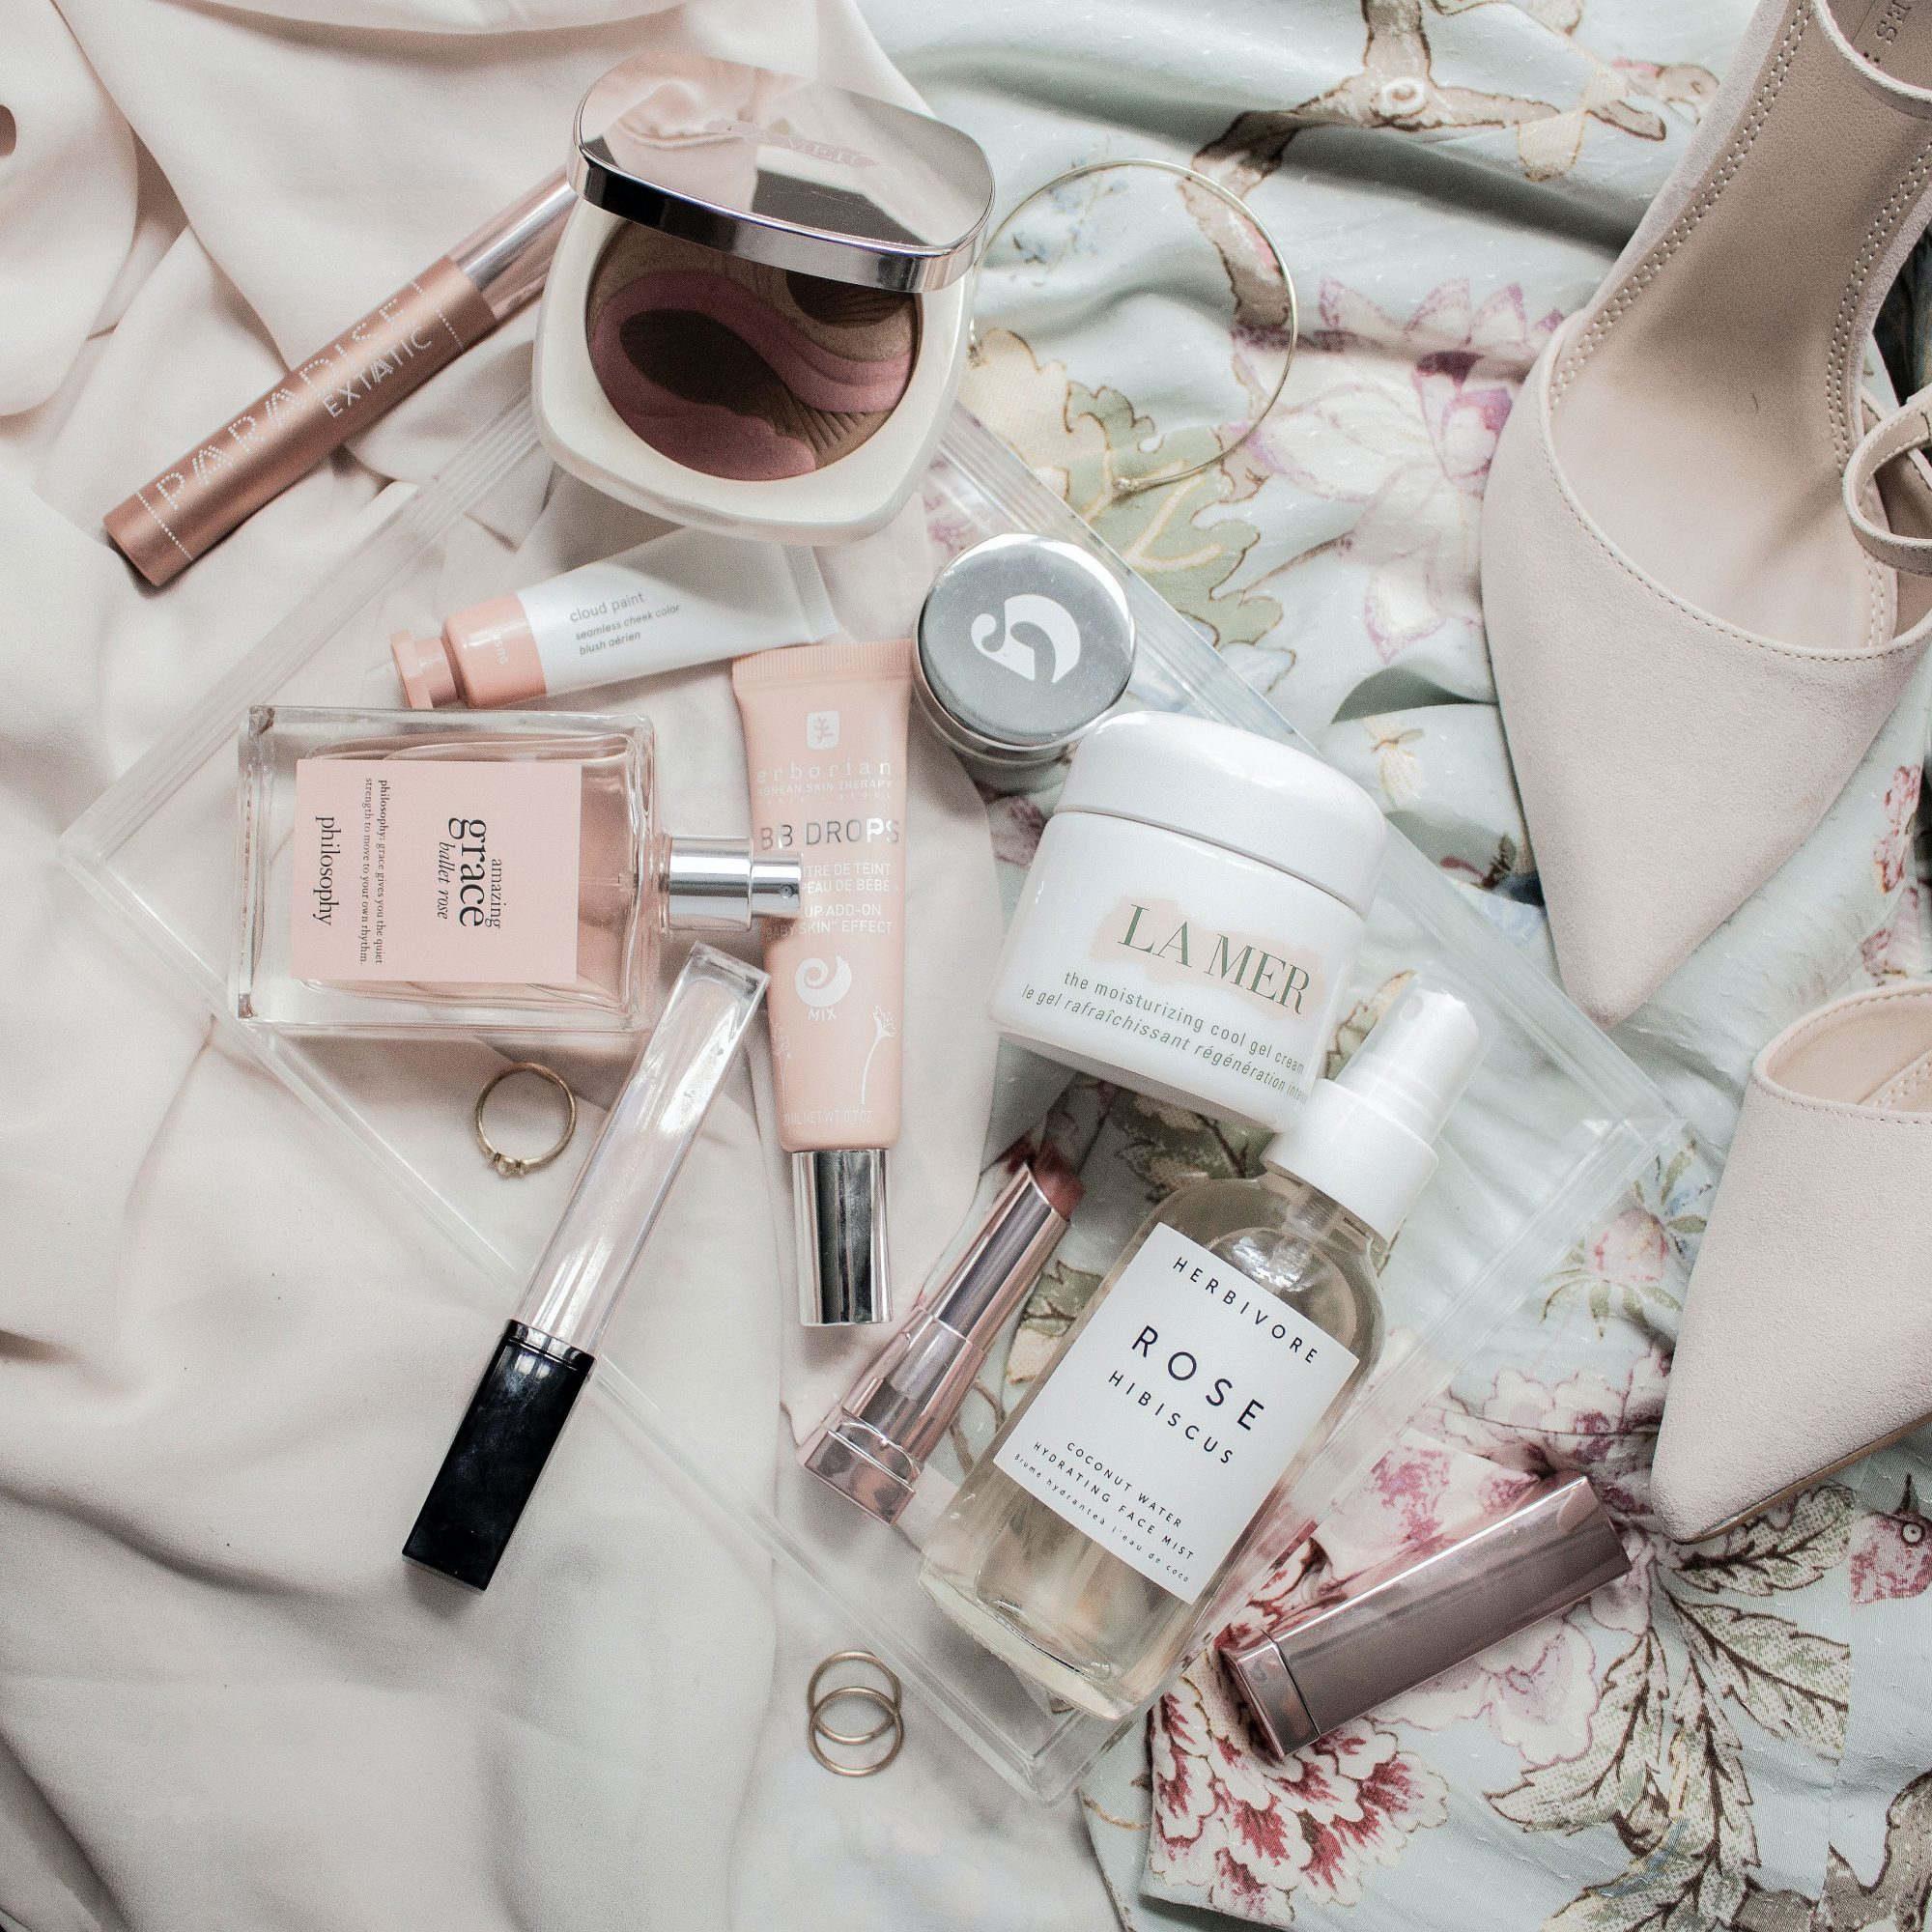 Nordstrom Black Friday Beauty Deals